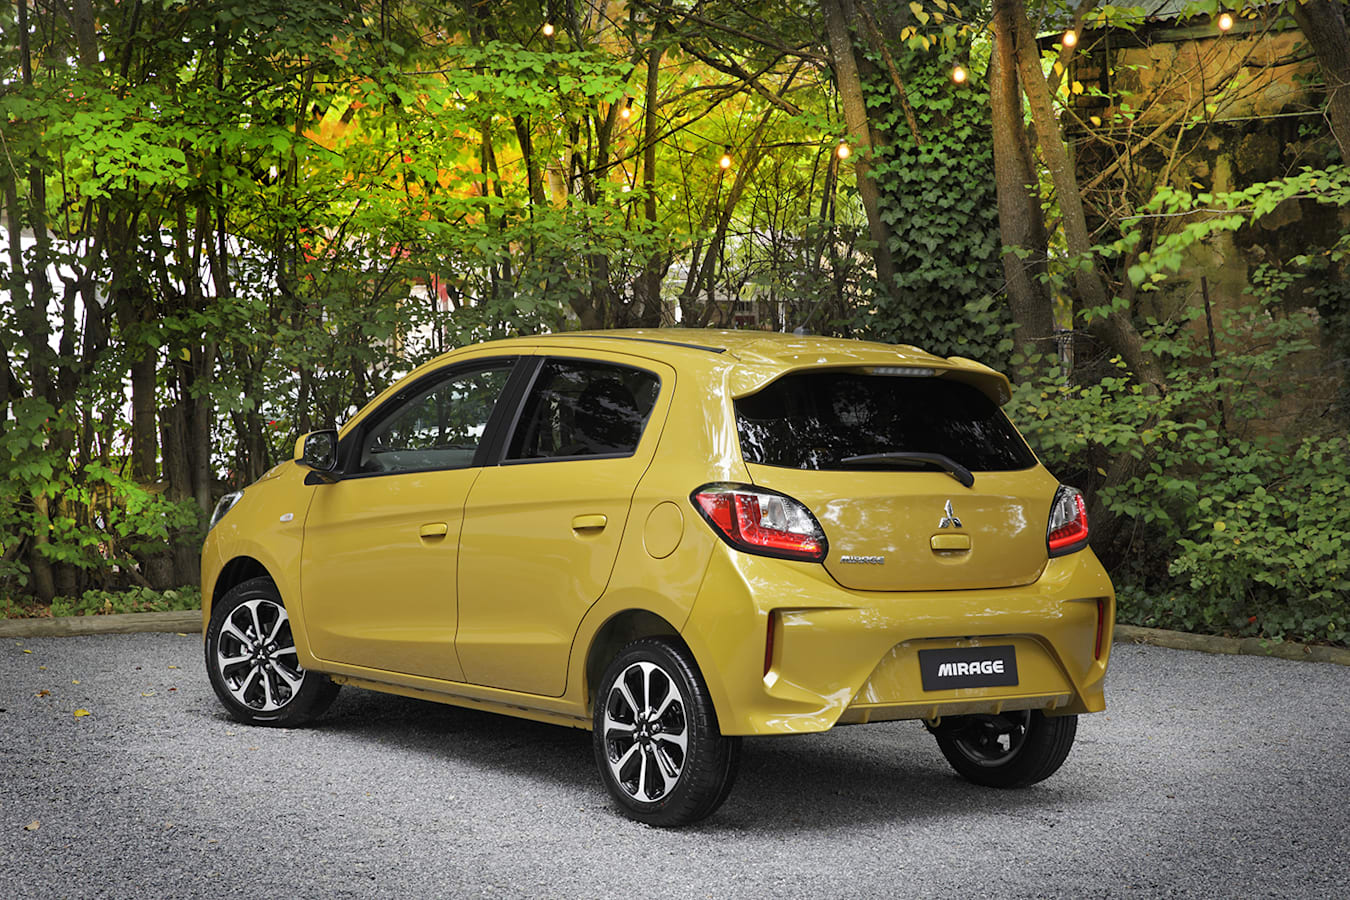 2020 Mitsubishi Mirage pricing and features